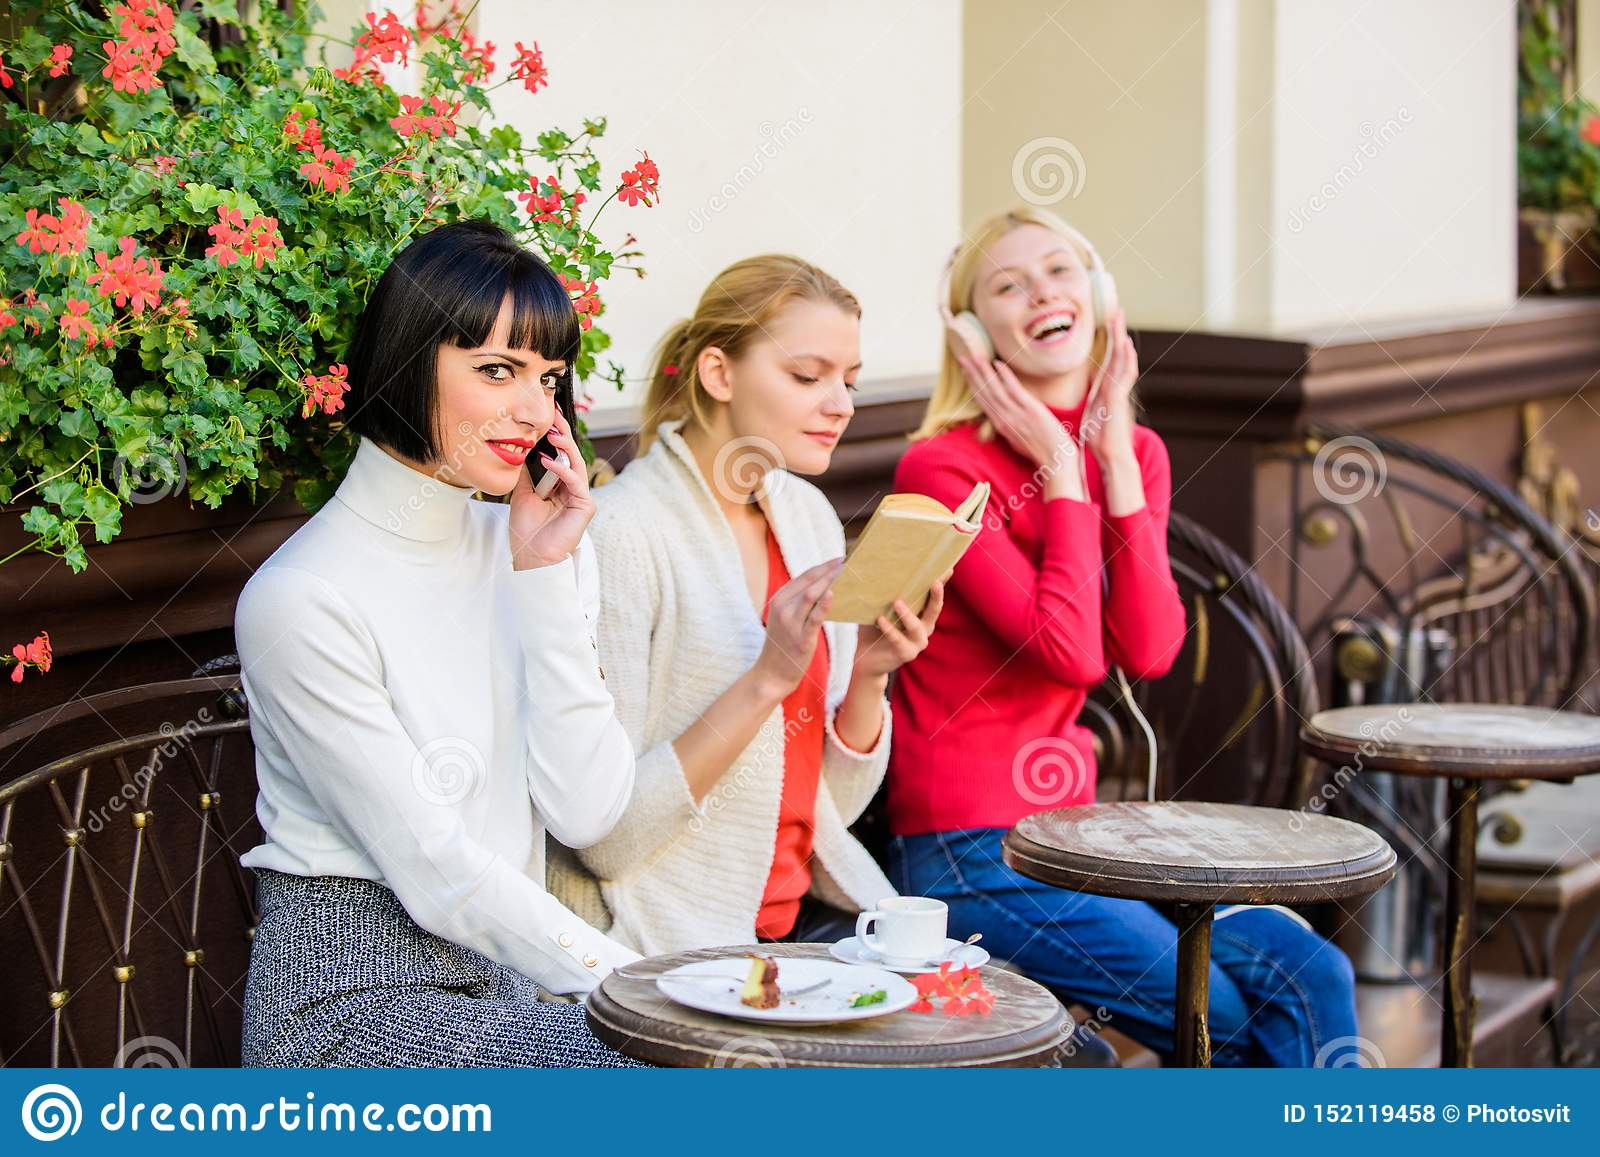 Different interests. Hobby and leisure. Group pretty women cafe terrace entertain themselves with reading speaking and